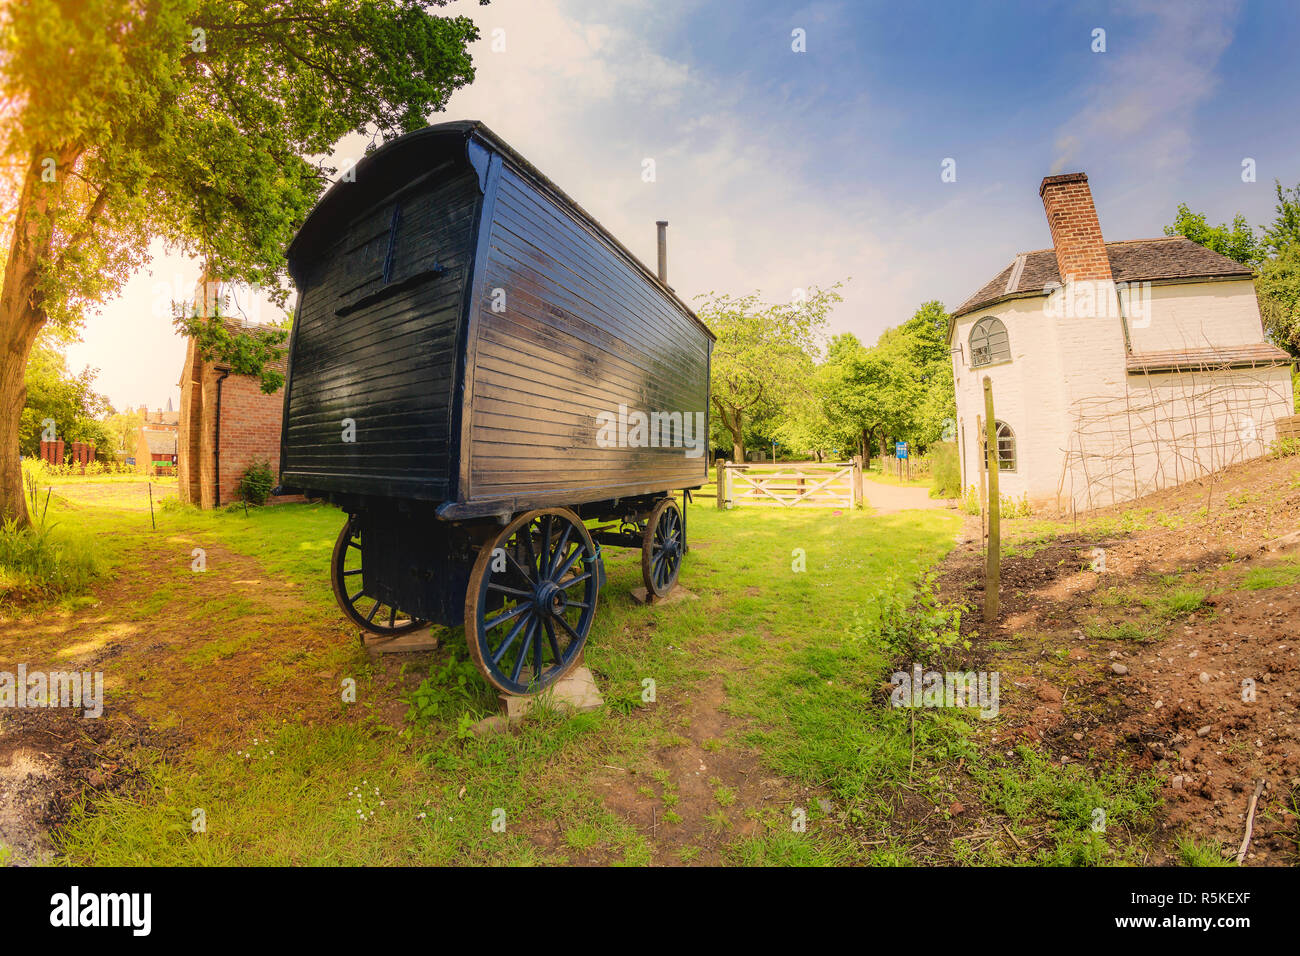 Avoncroft Museum of Historical Buildings grounds. - Stock Image